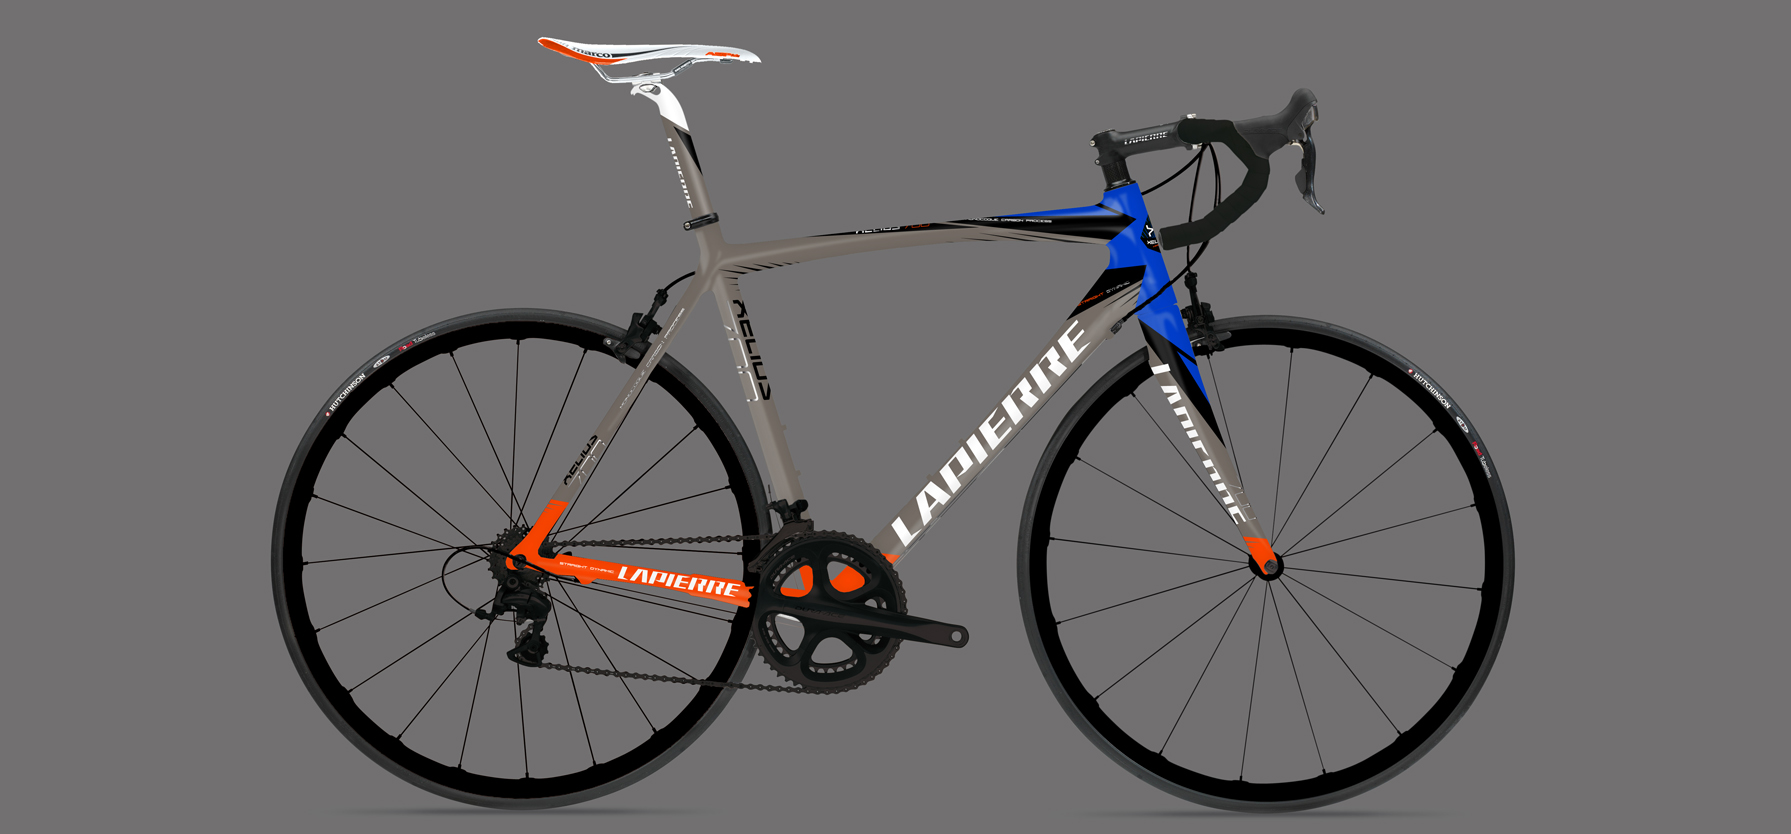 cycle_lapierre_gamme_course_8